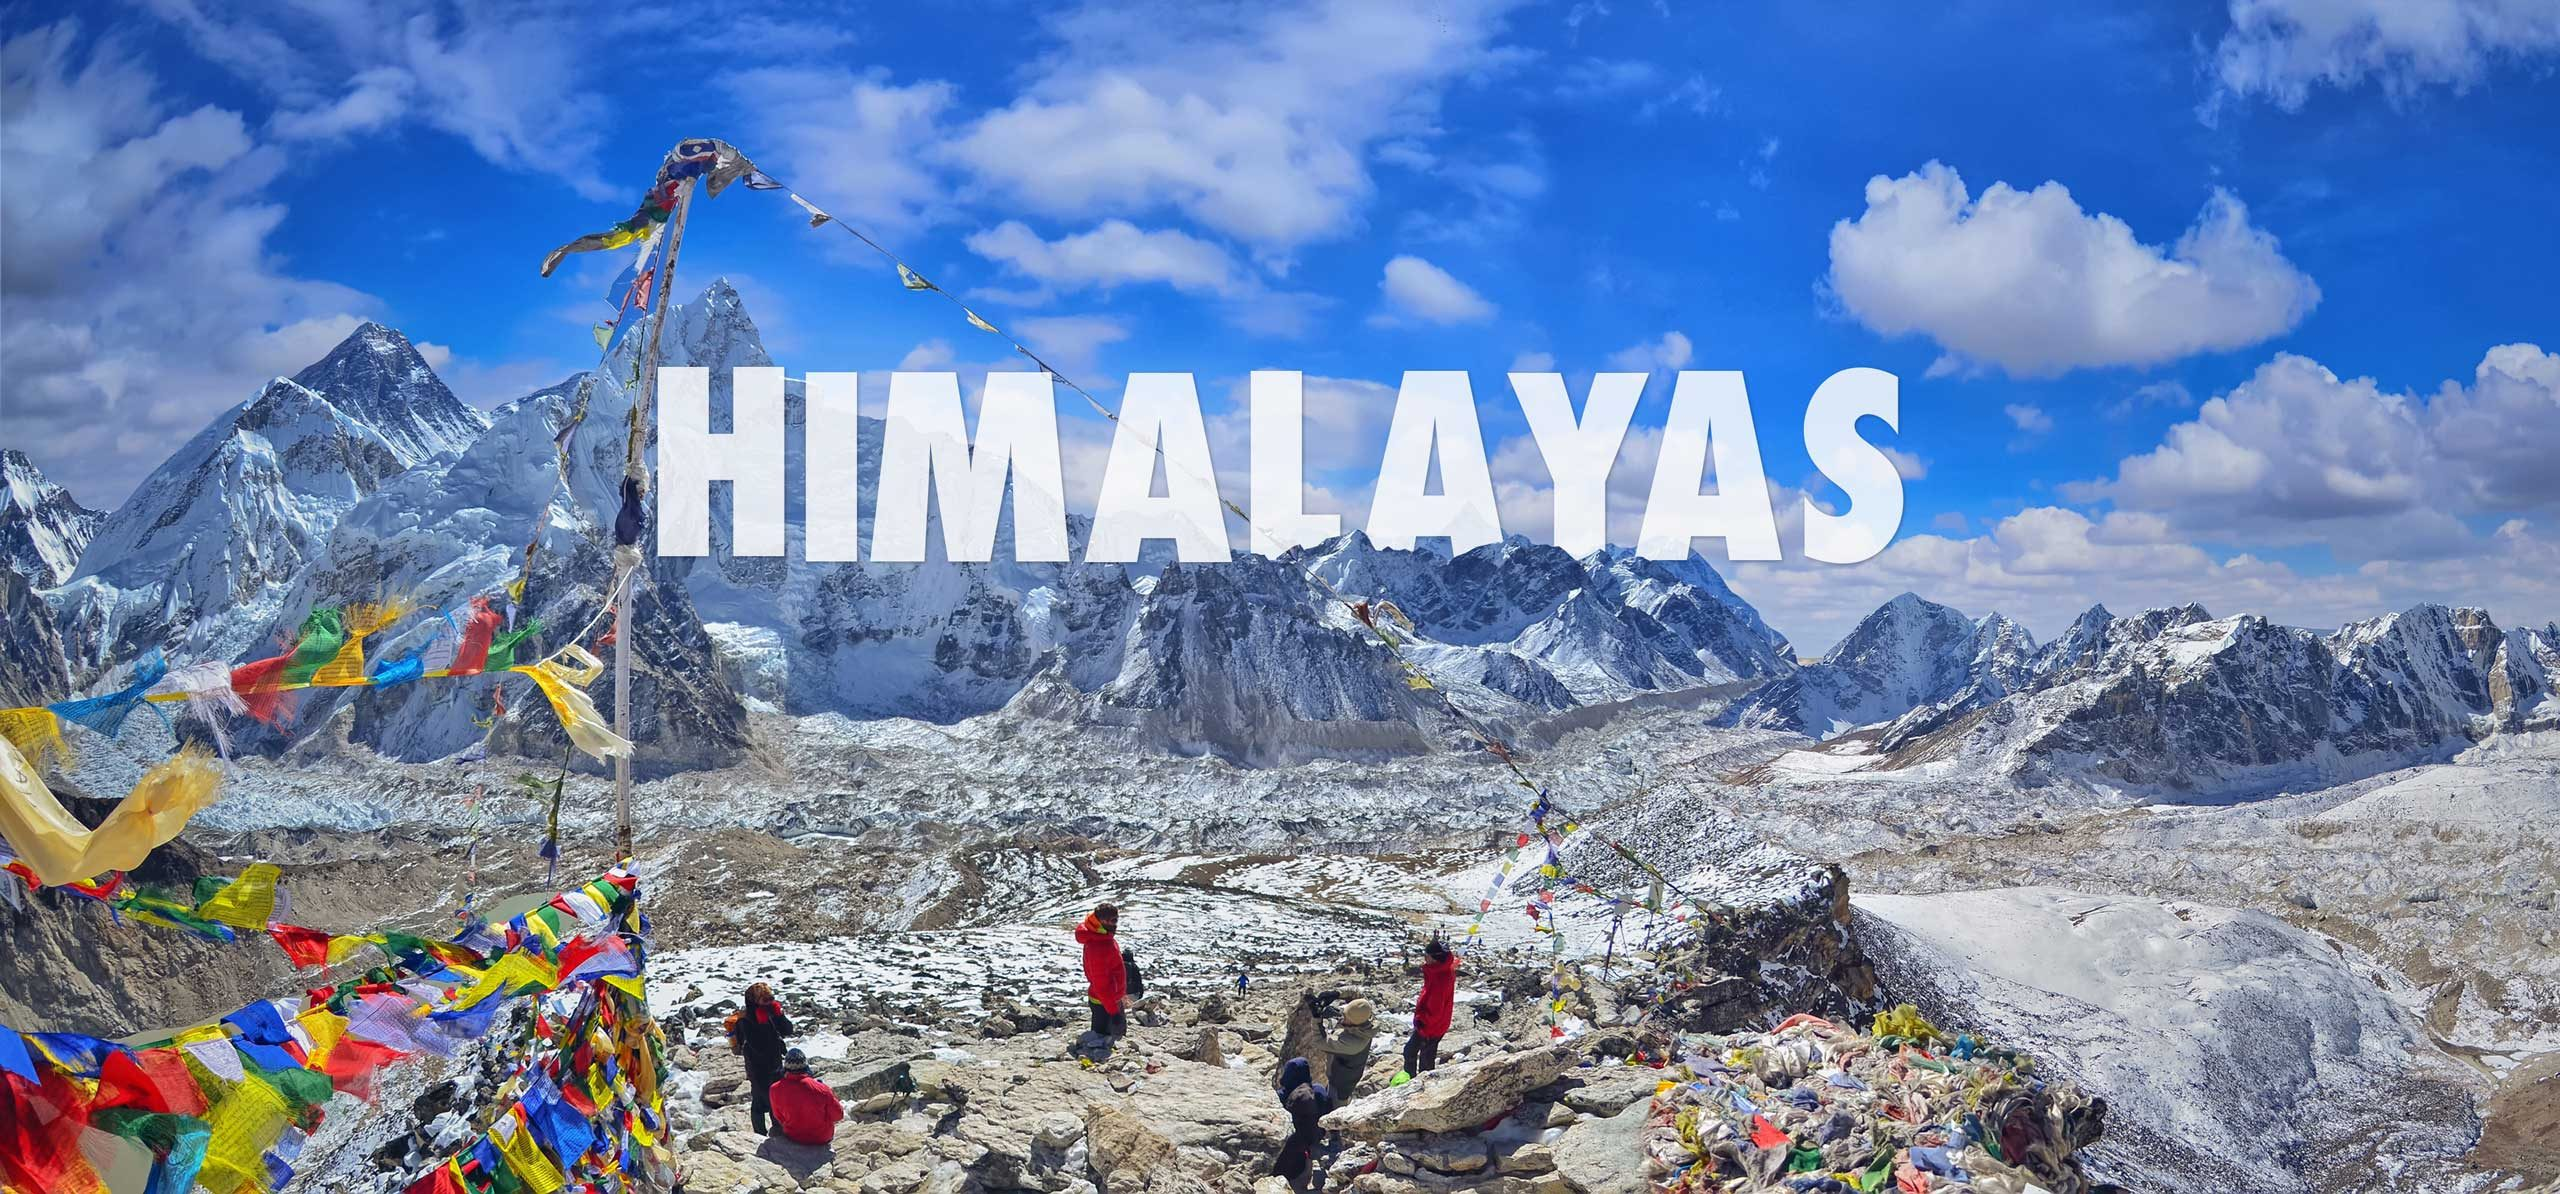 Hikers at Basecamp in the Himalayas